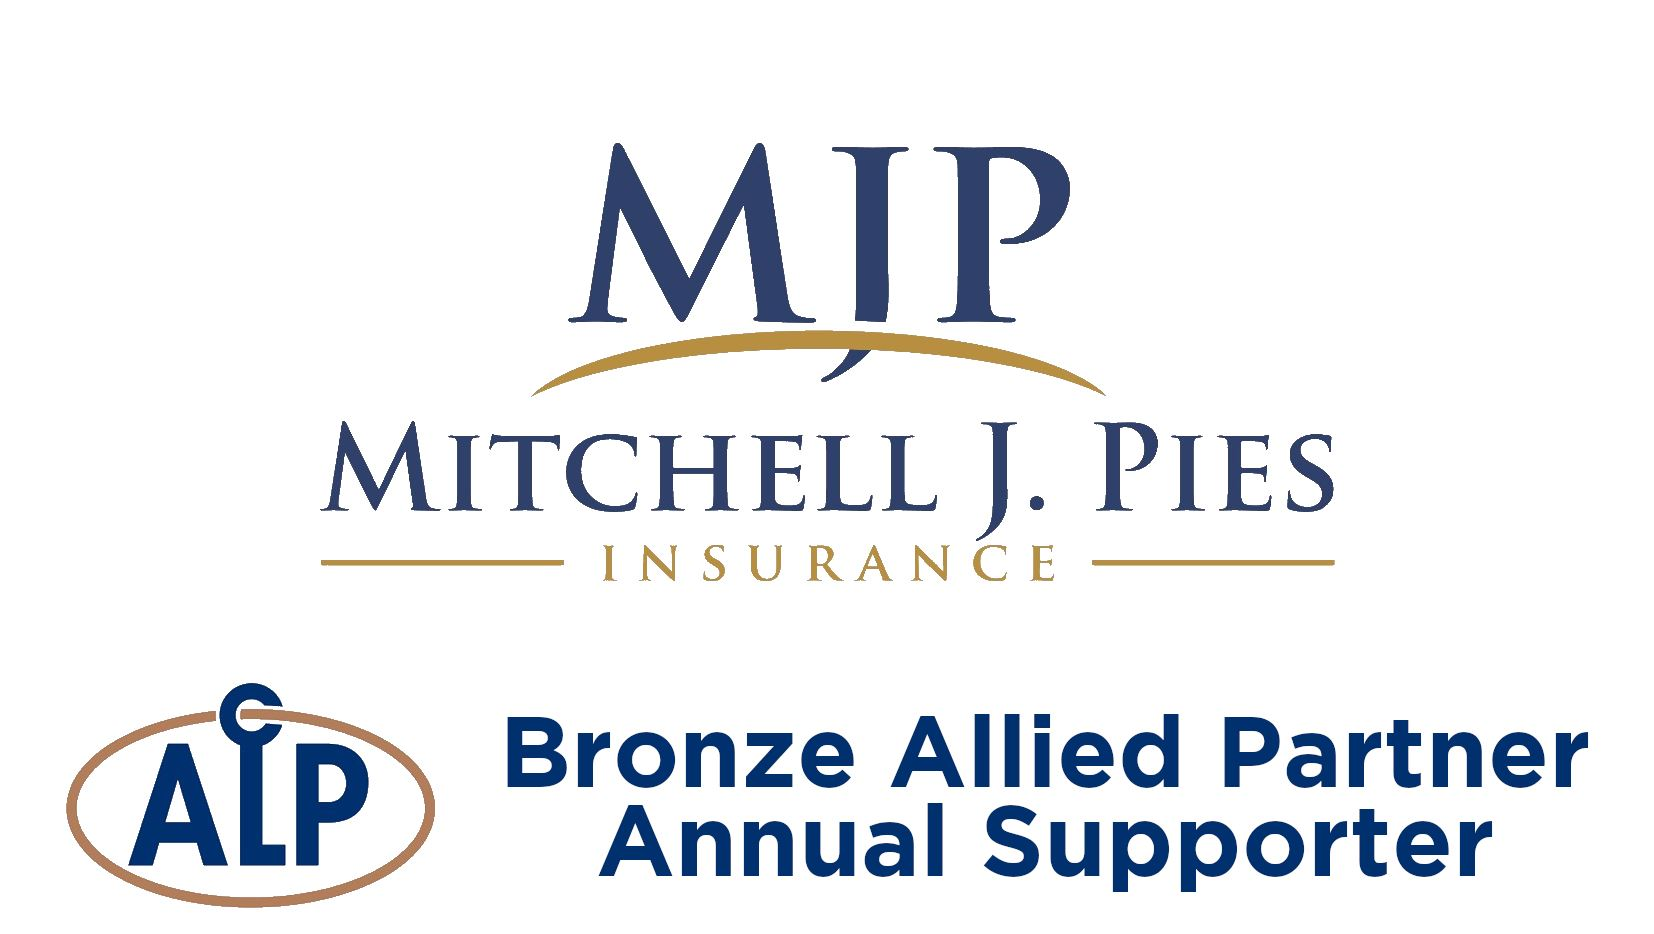 Mitch Pies Logo and Sponsorship